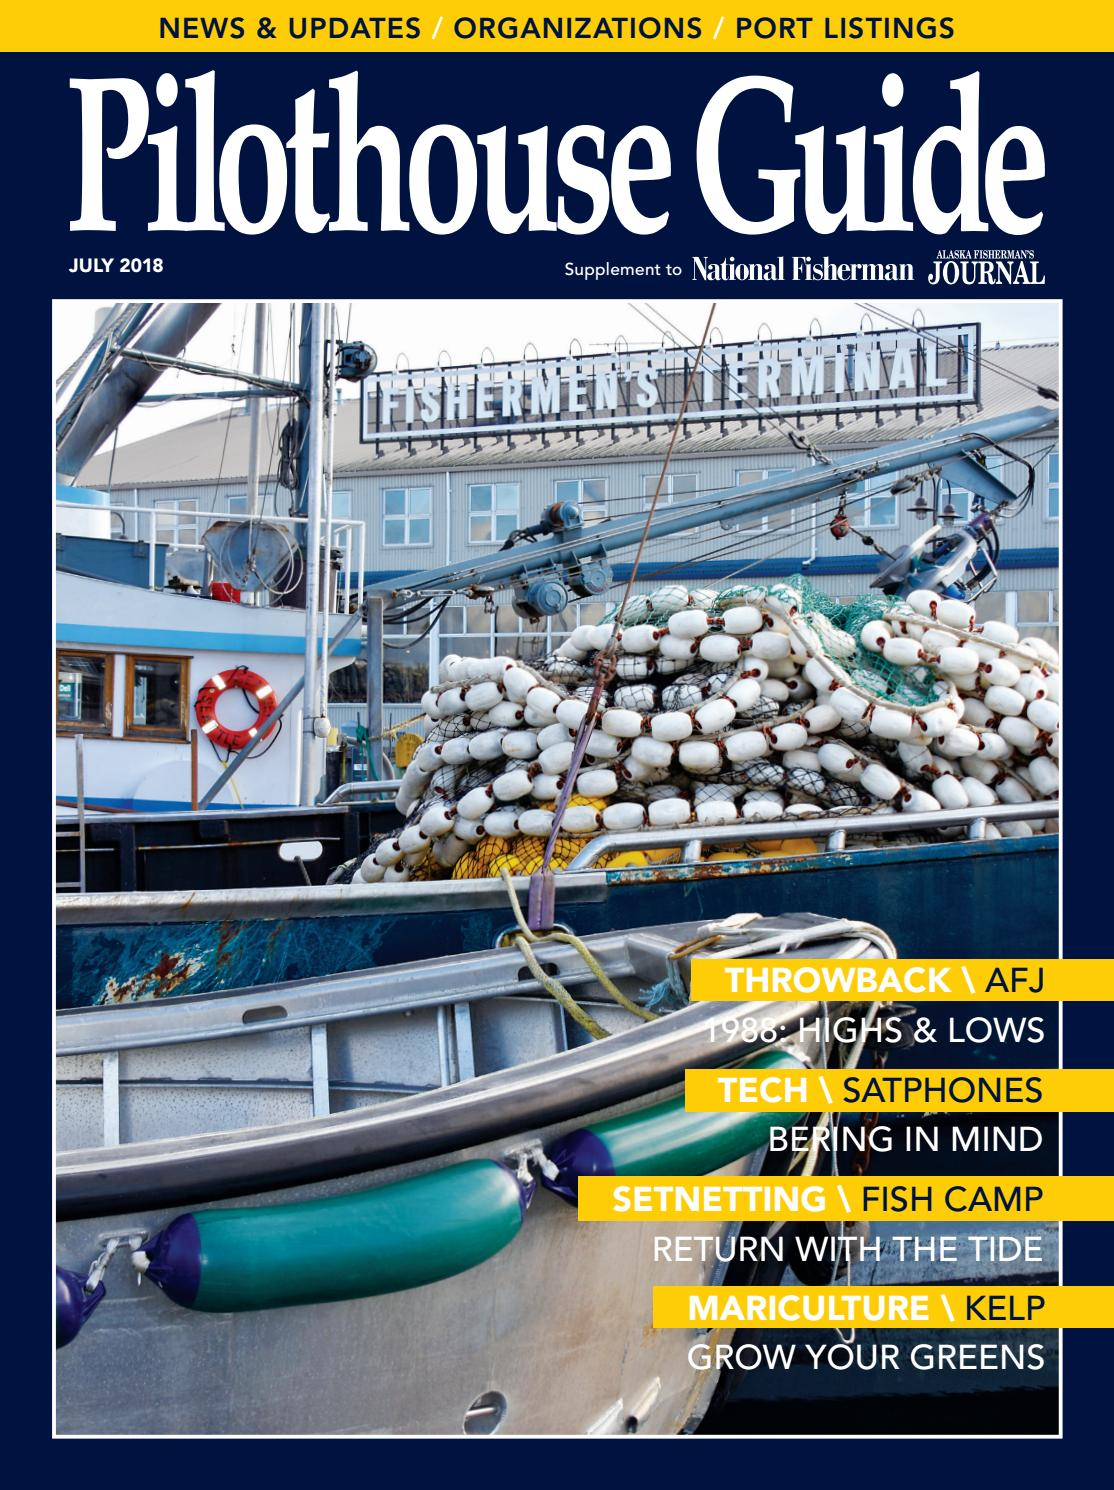 Pilothouse Guide 2018 By National Fisherman Issuu